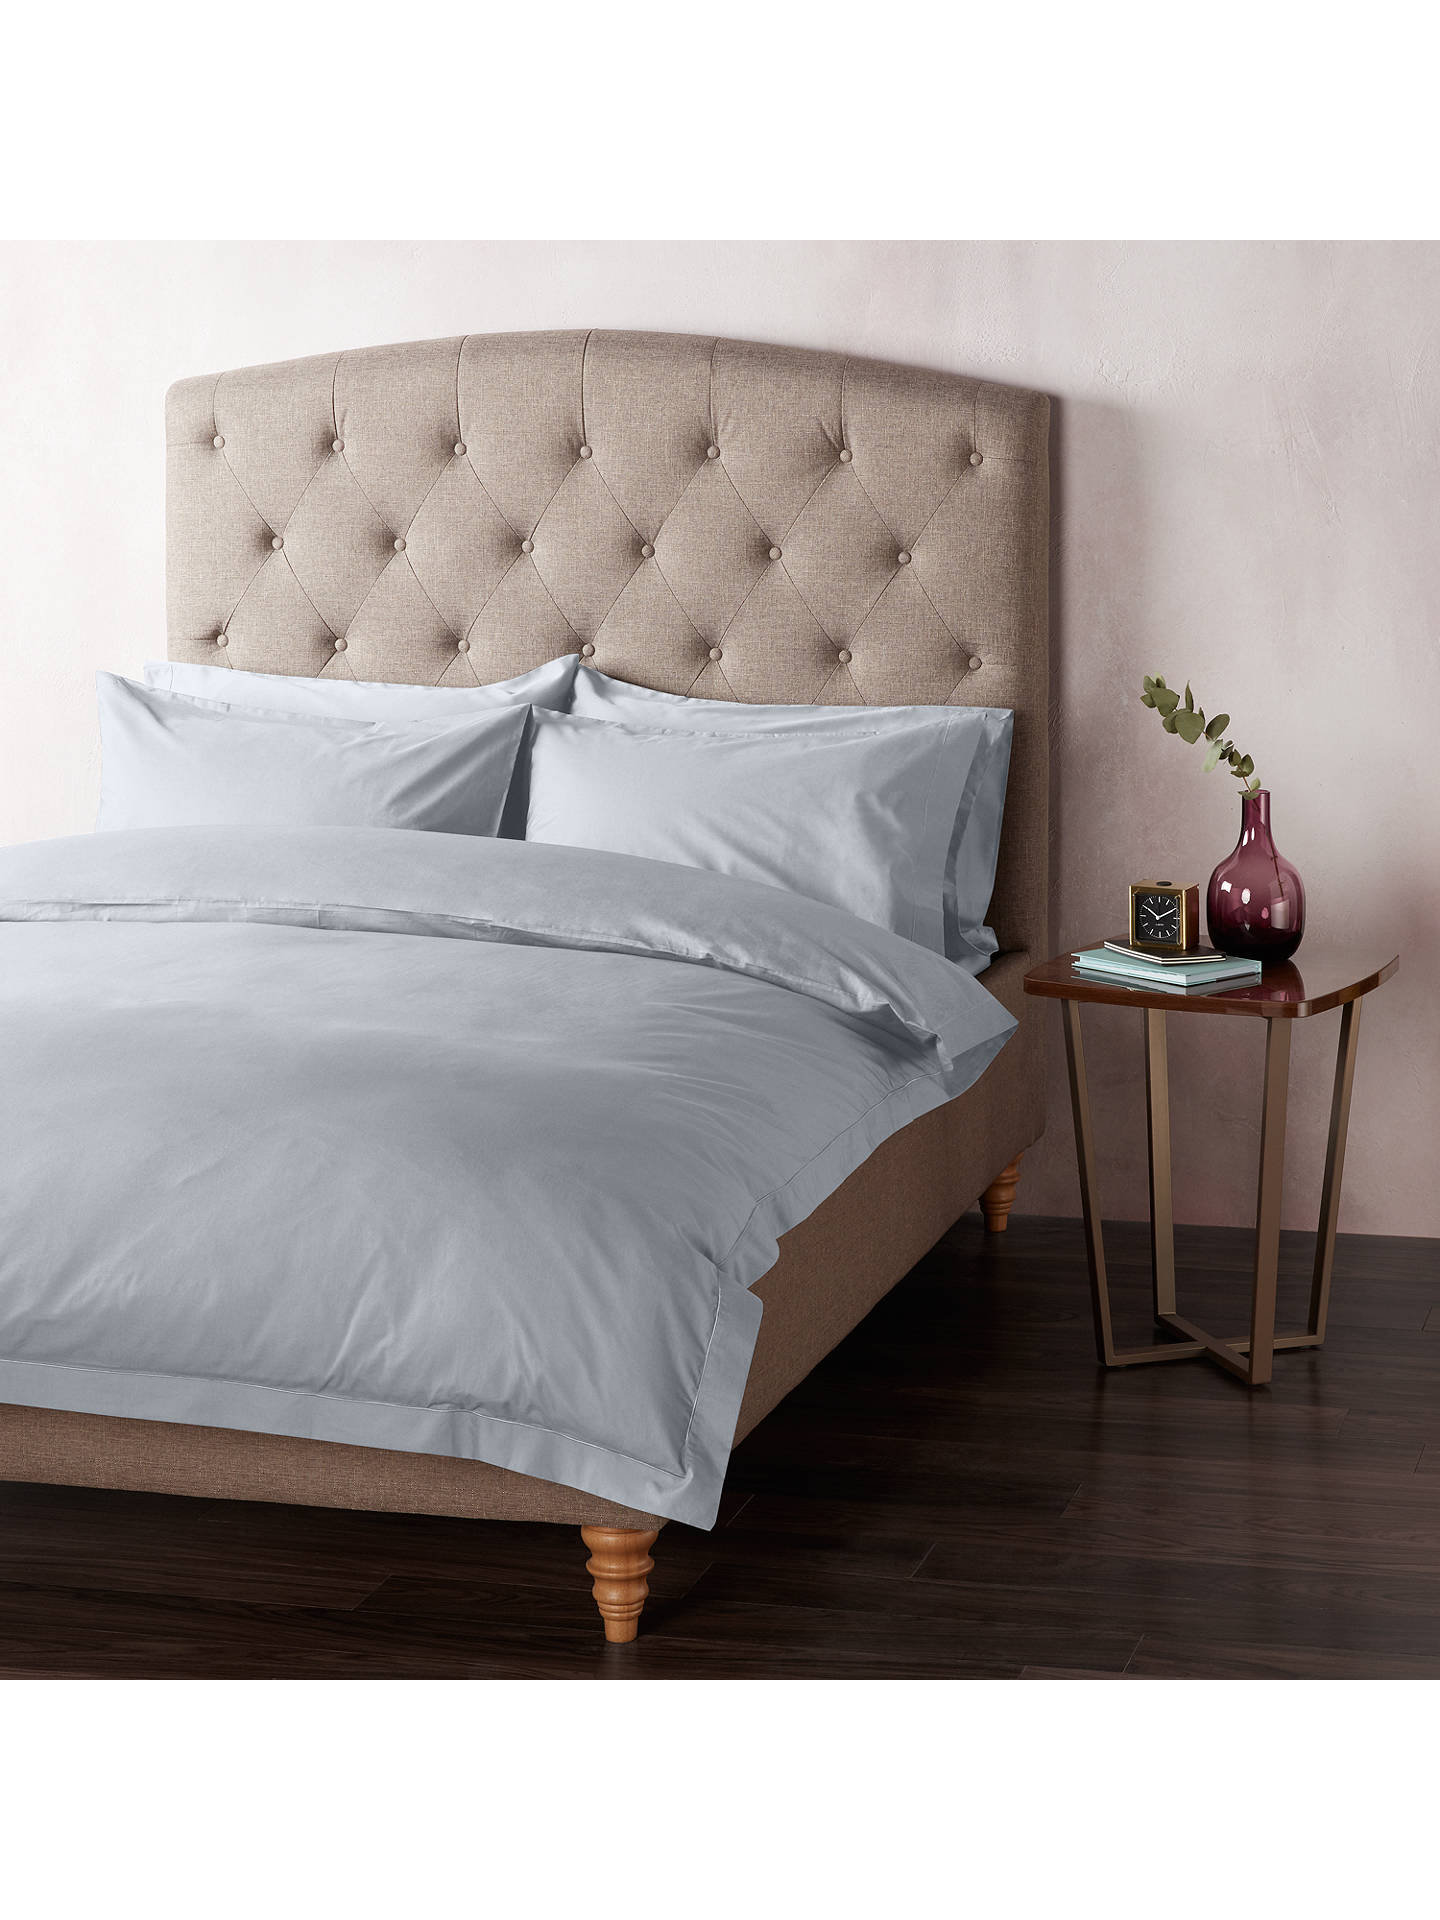 john lewis partners 400 thread count crisp fresh. Black Bedroom Furniture Sets. Home Design Ideas